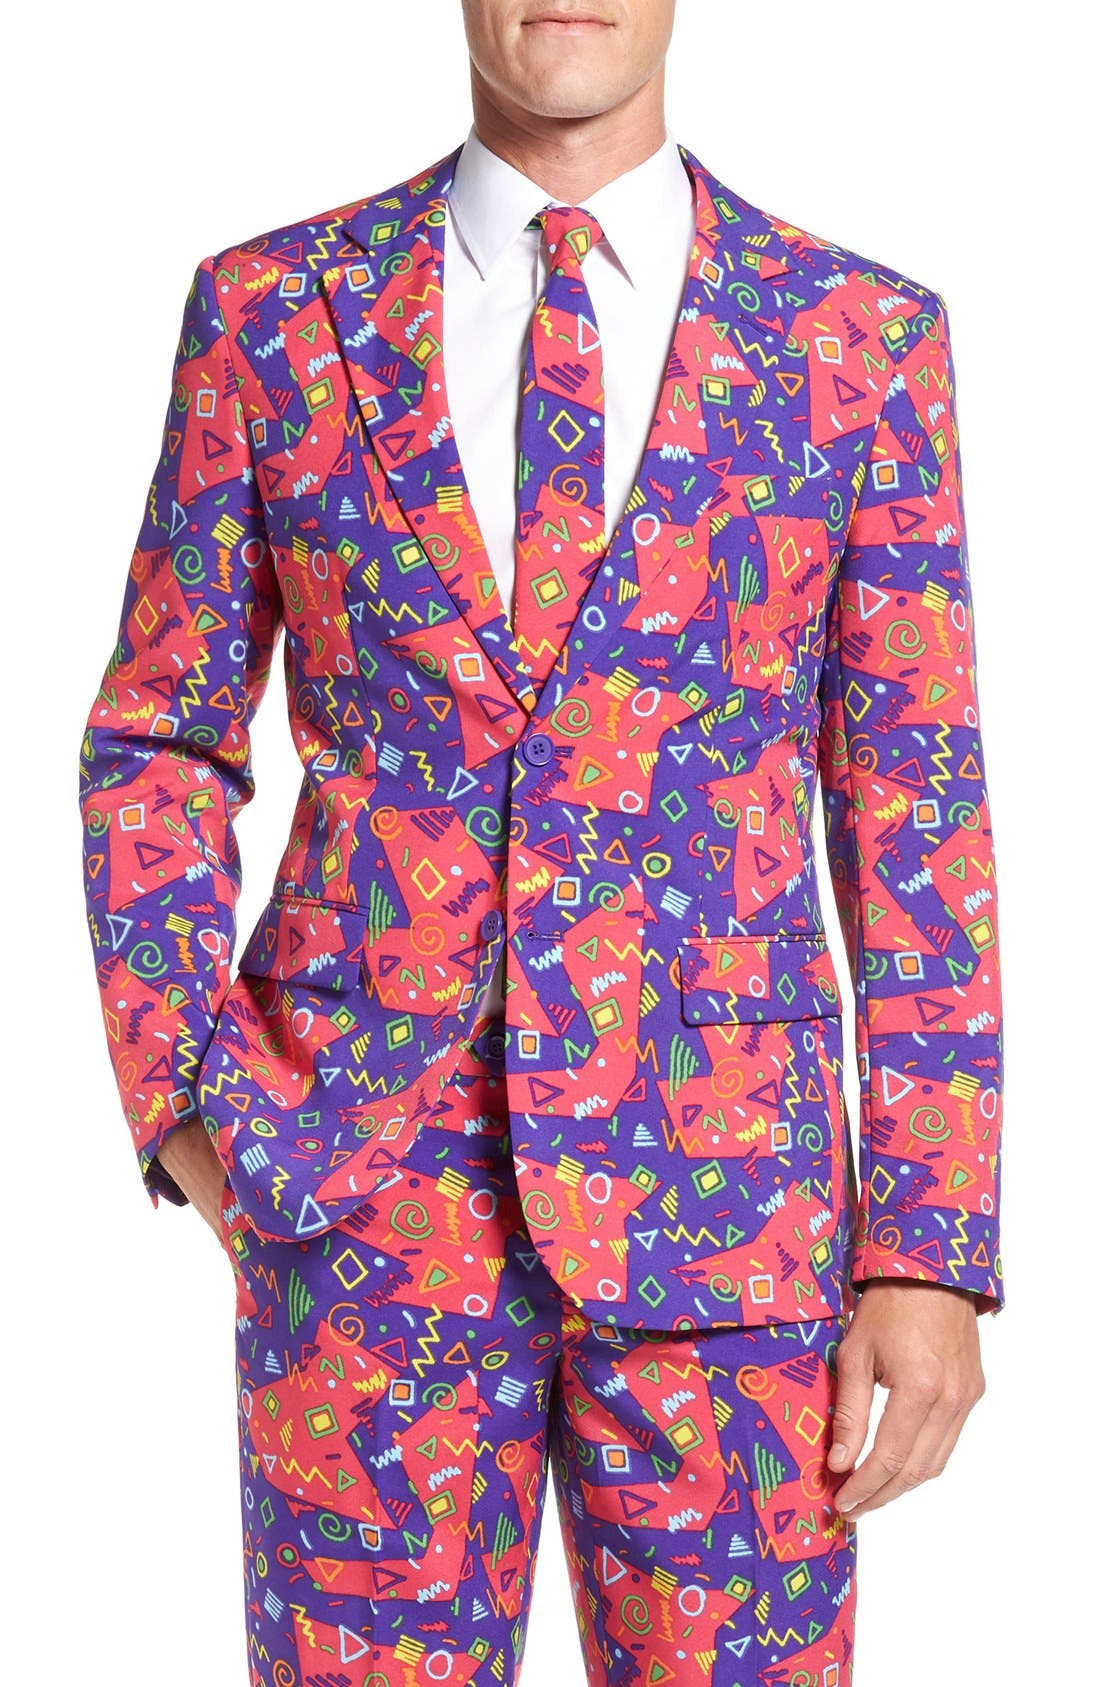 'The Fresh Prince' Trim Fit Two-Piece Suit with Tie,                             Alternate thumbnail 6, color,